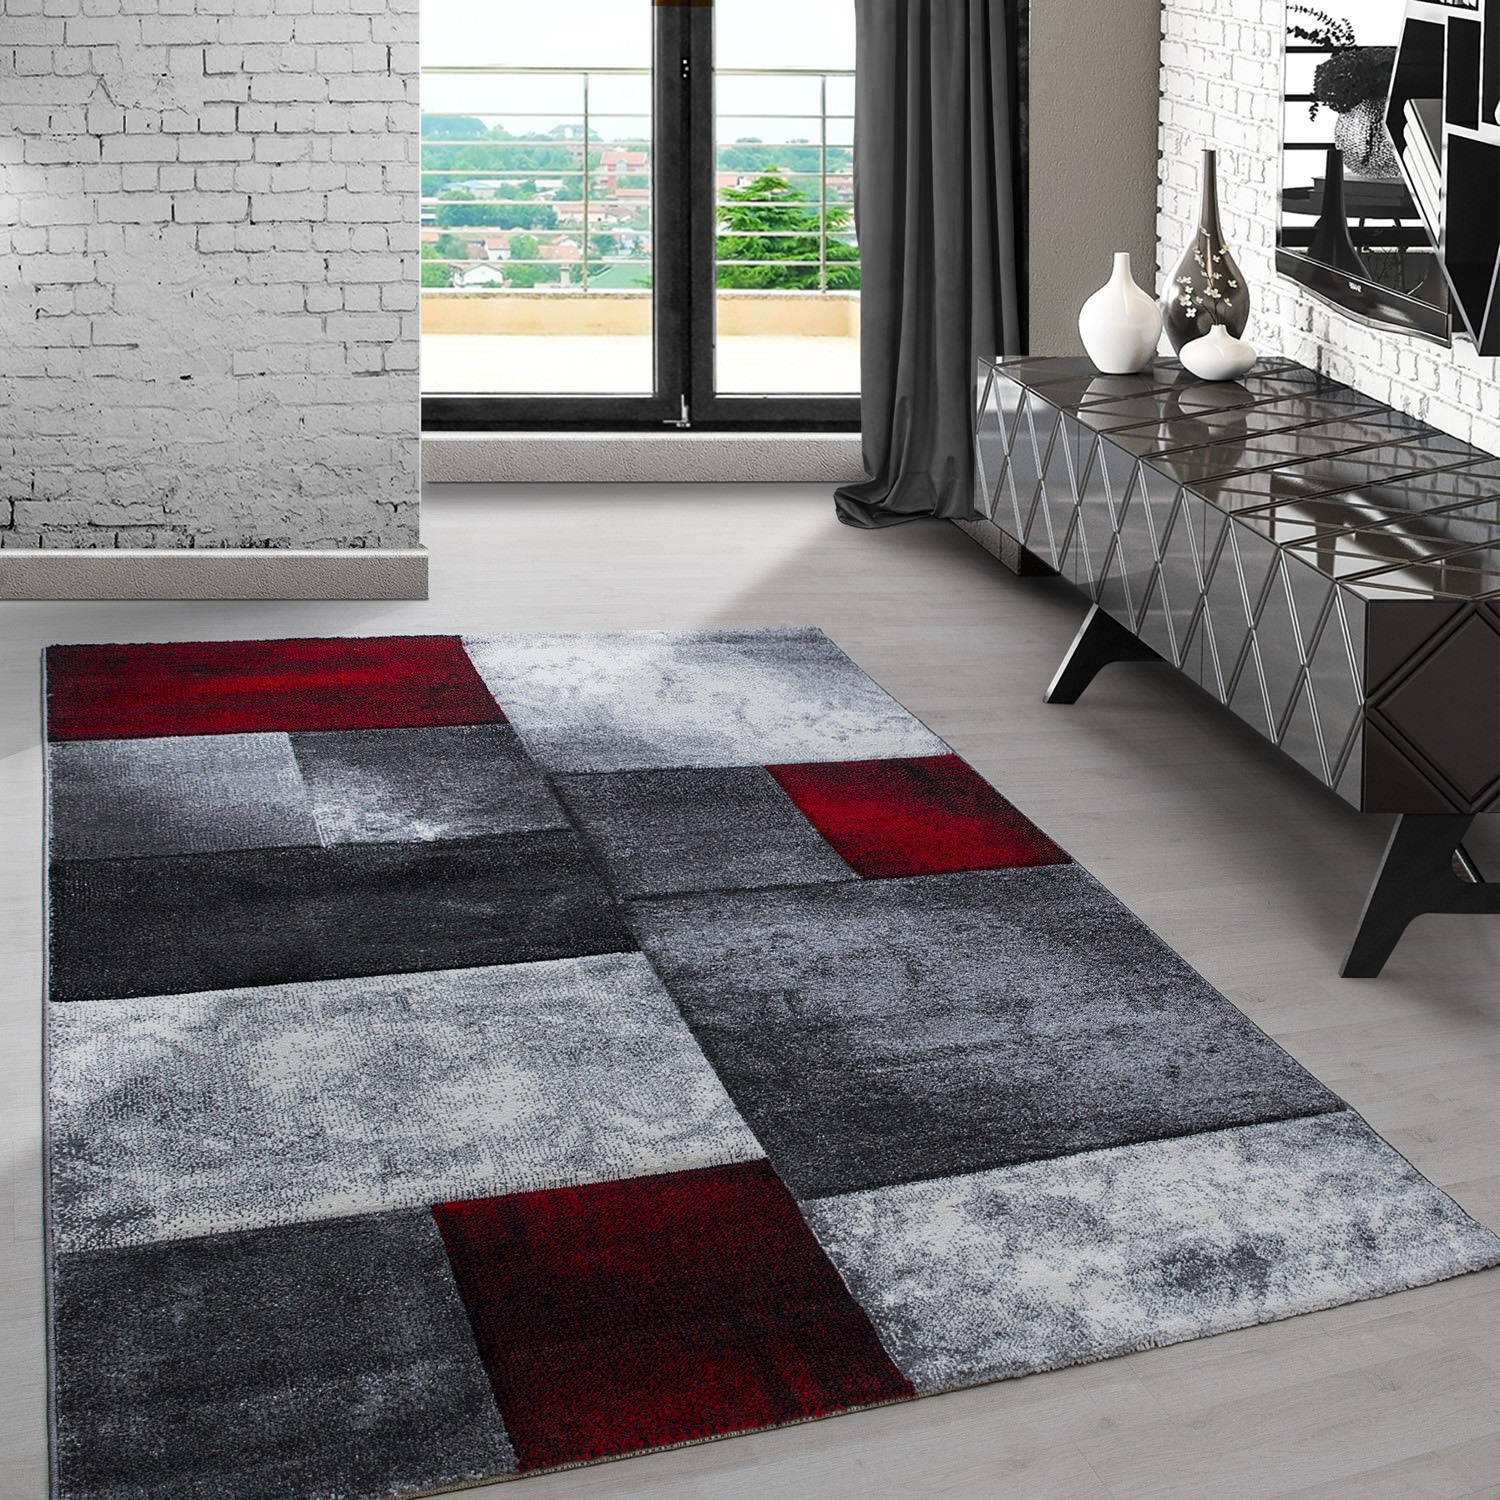 tapis rouge noir gris excellent tapis rouge gris noir with tapis rouge noir gris trendy large. Black Bedroom Furniture Sets. Home Design Ideas